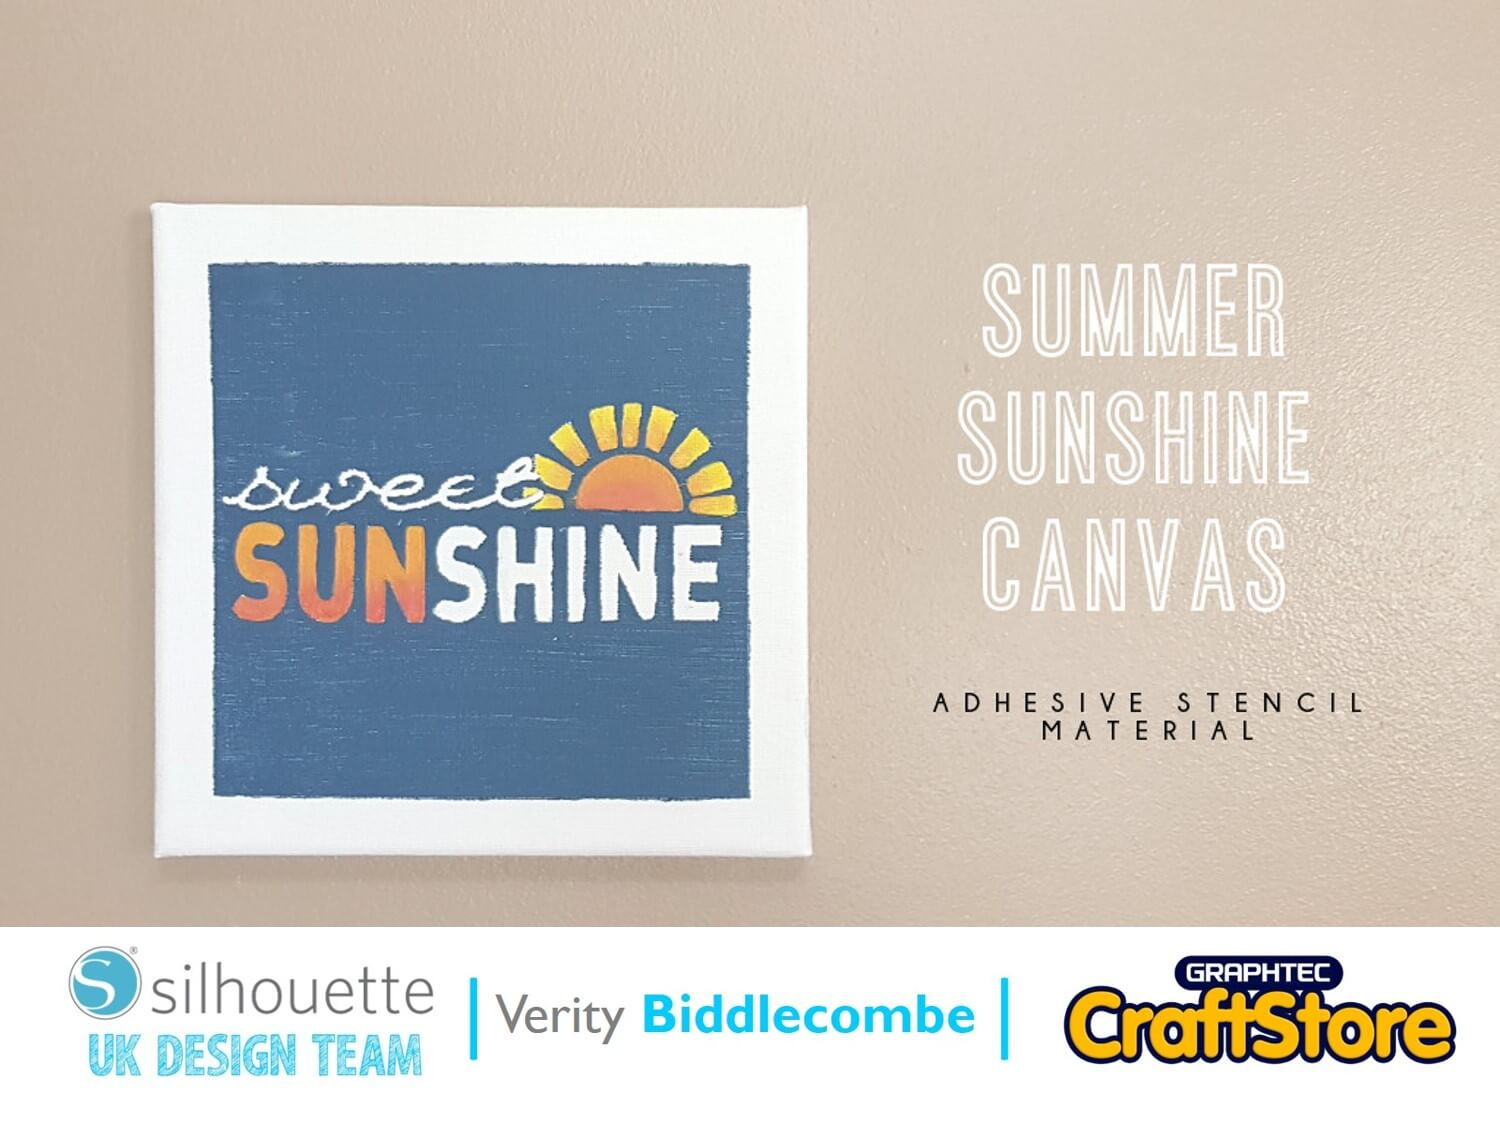 Summer Sunshine Canvas | Verity Biddlecombe | Silhouette UK Blog